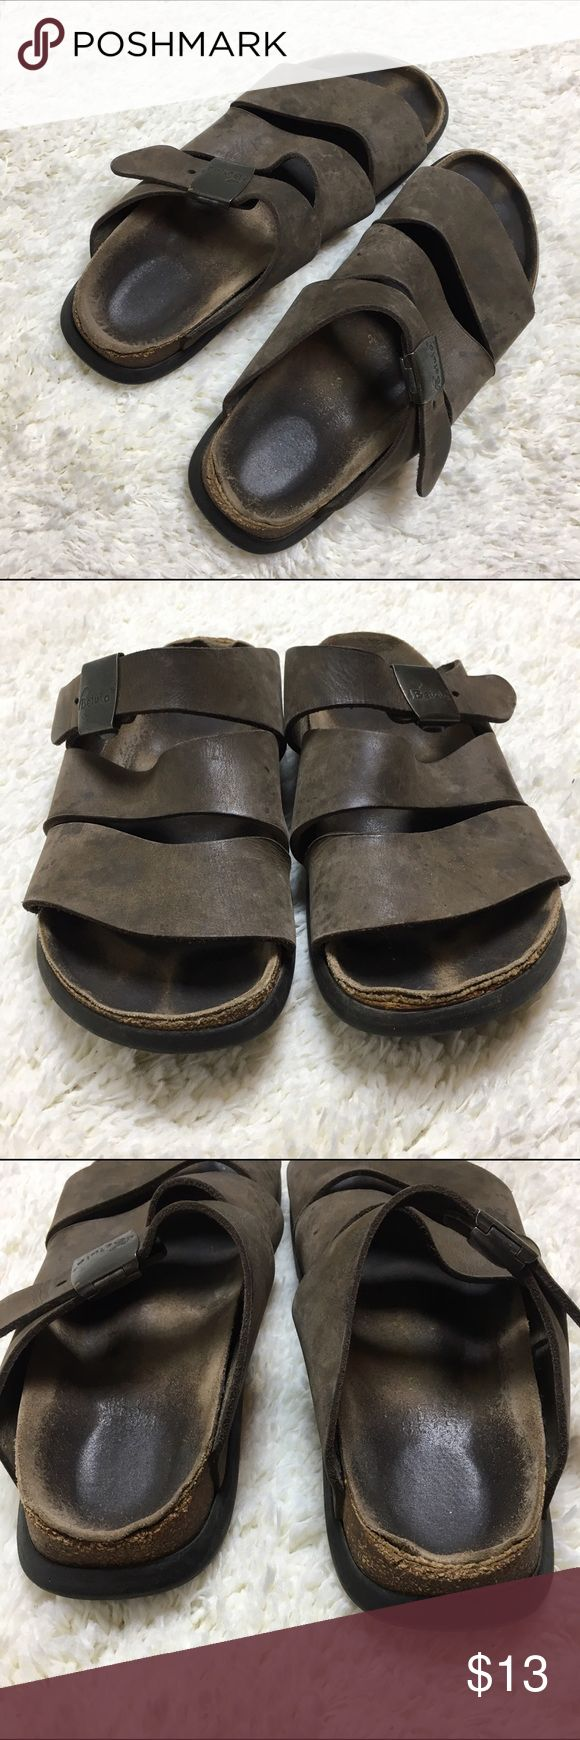 Birkenstock Betula Brown Leather Sandals Super cute and comfortable brown leather Betula sandals. Easy adjustable clip have been well worn they still have a lot of life left in them. Condition of soles is shown in photos. some staining on the leather strap is hardly noticeable since the brown color. Birkenstock Shoes Sandals